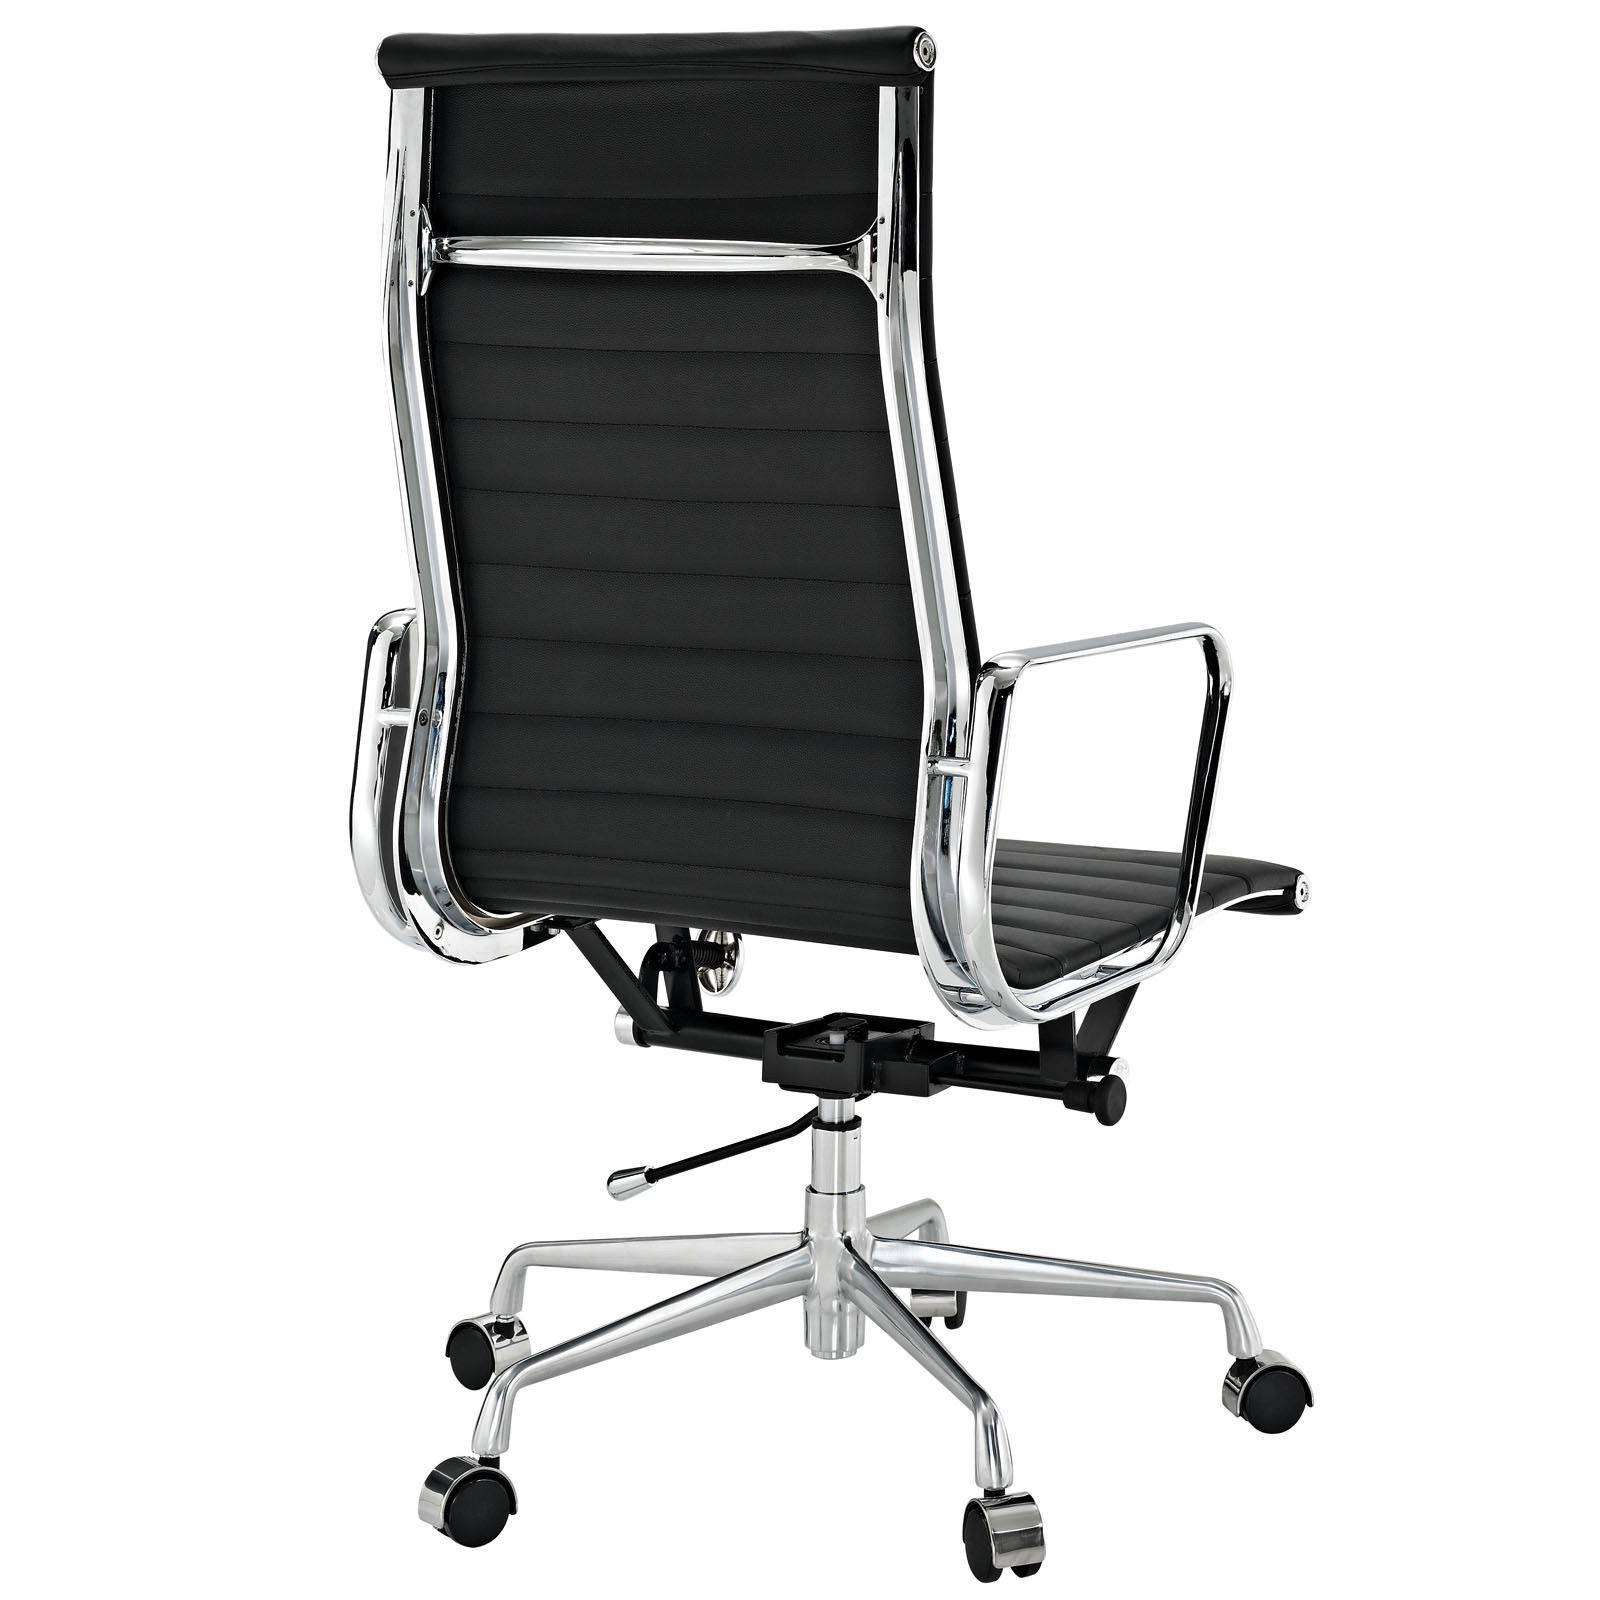 MOD Classic Aluminum Executive fice Chair